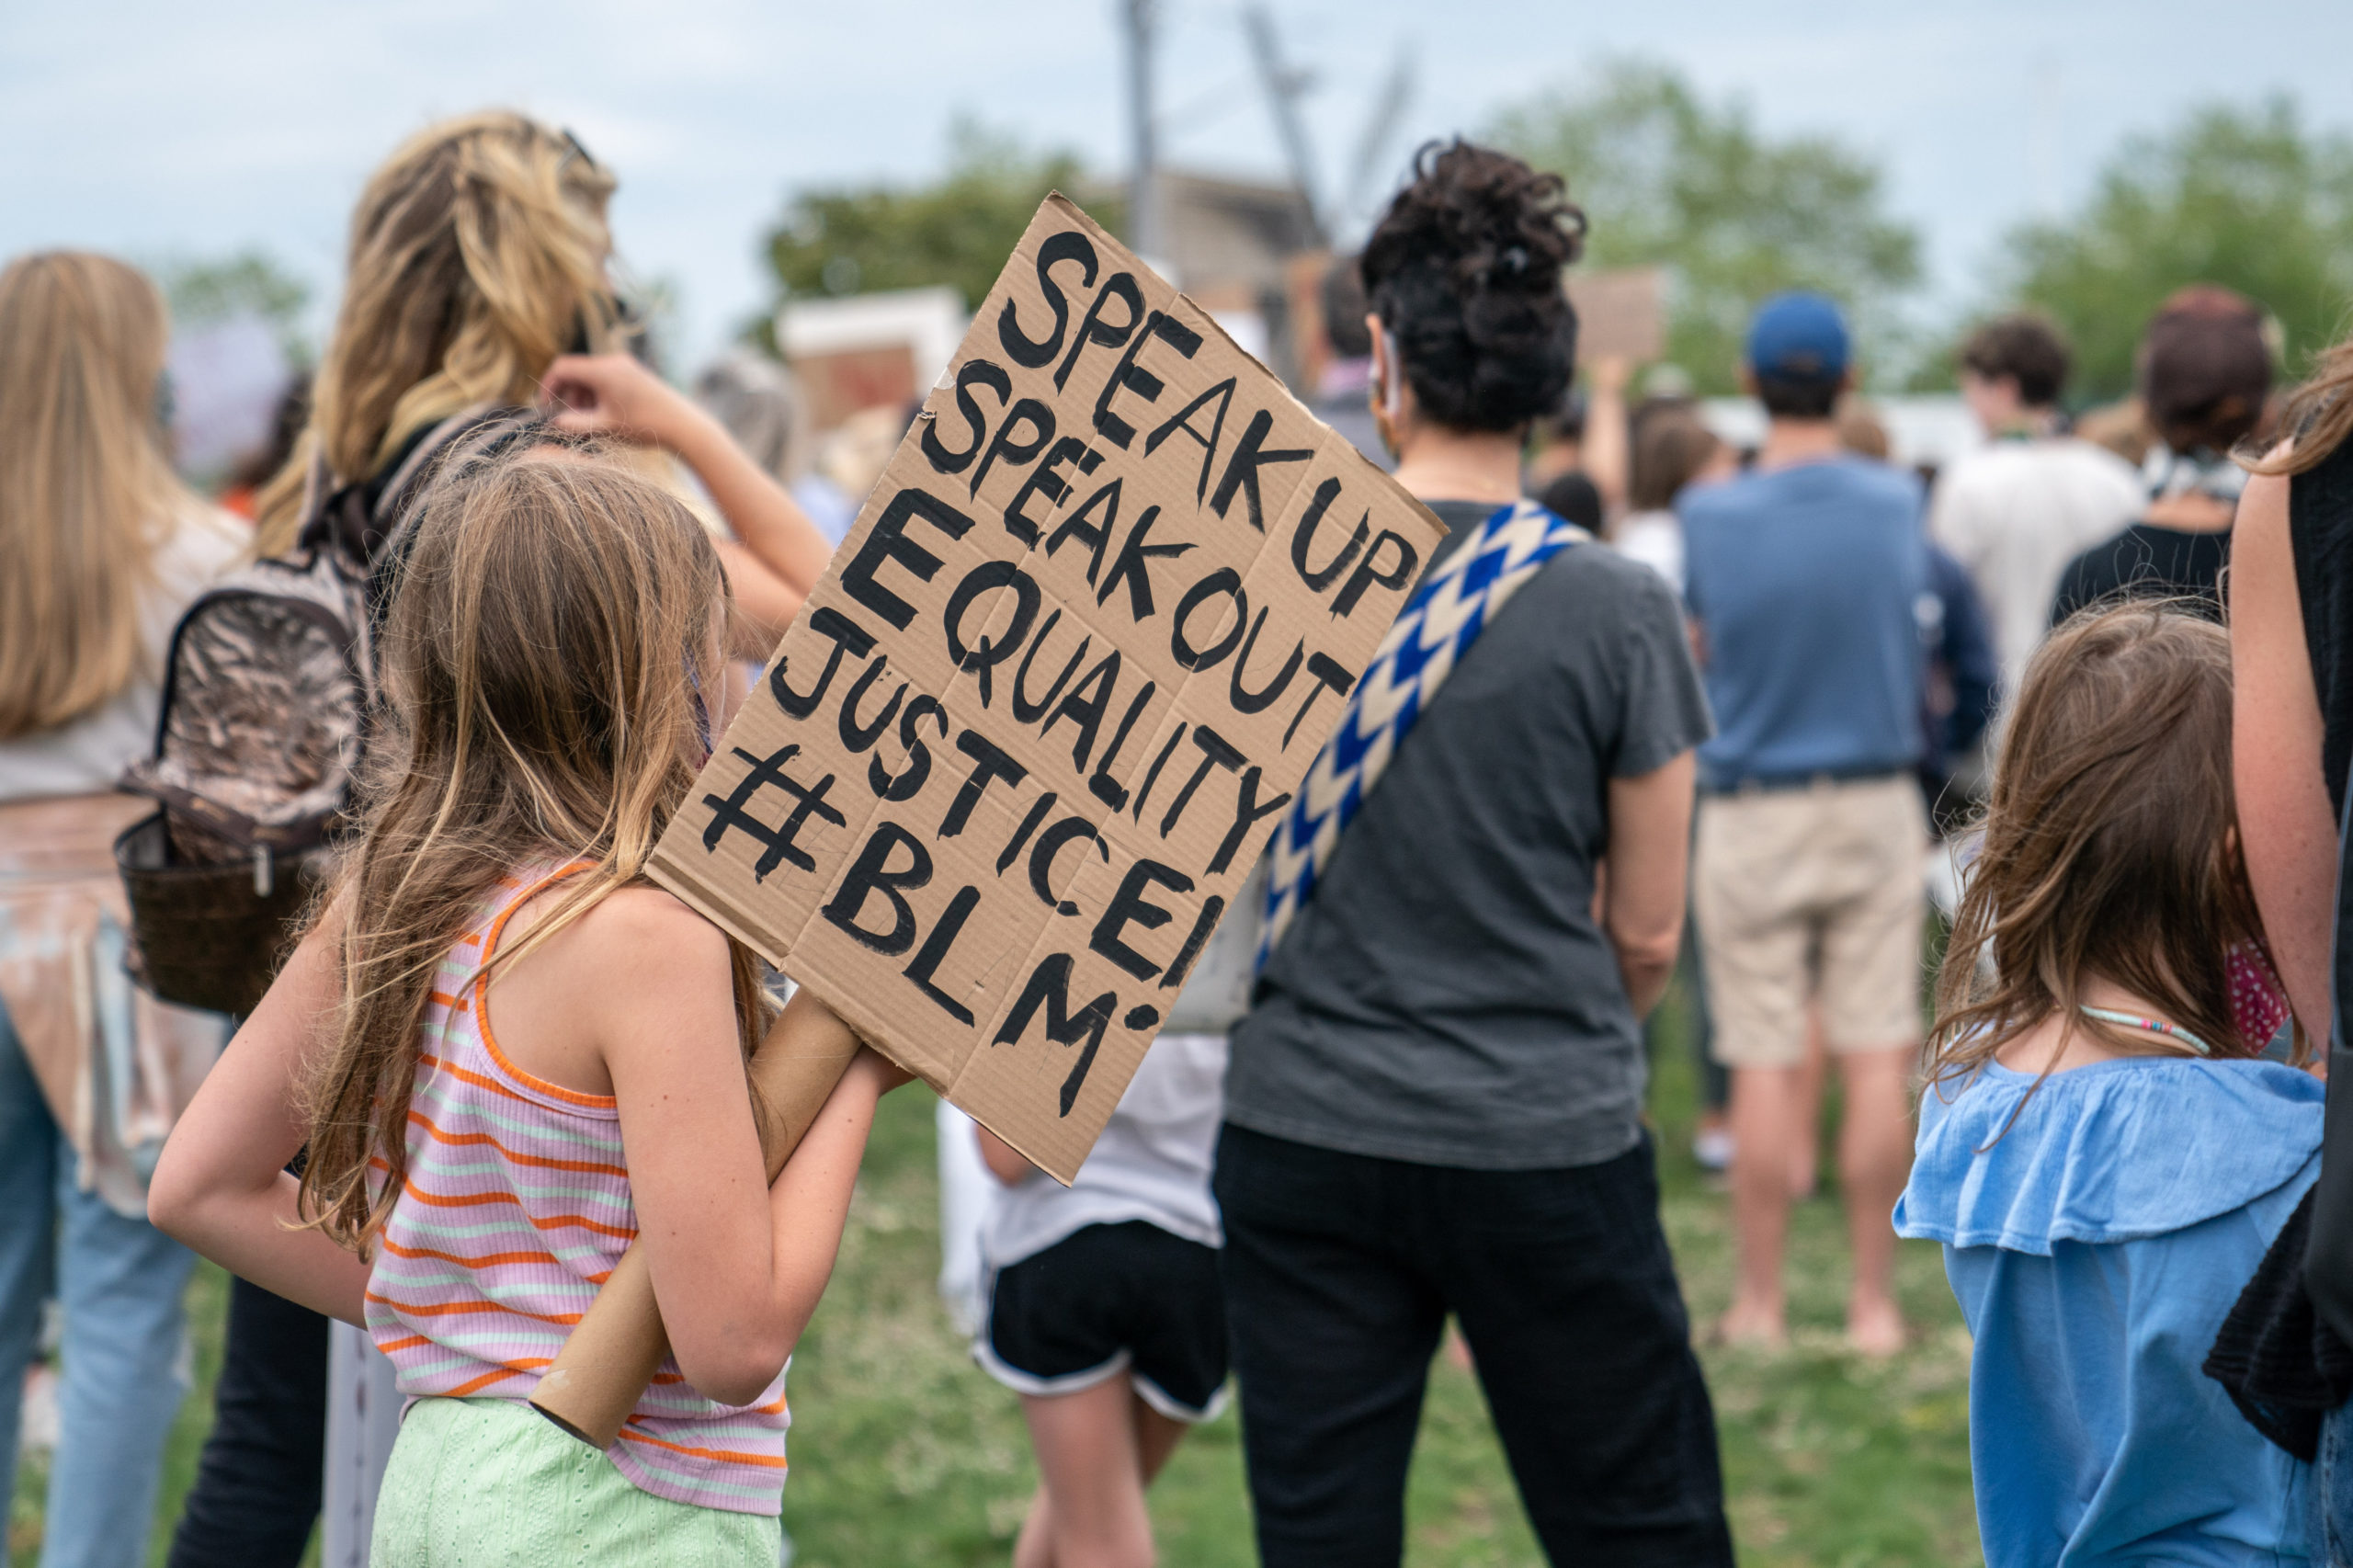 Hundreds of people participated in a protest on Friday in Sag Harbor against police brutality and racism.